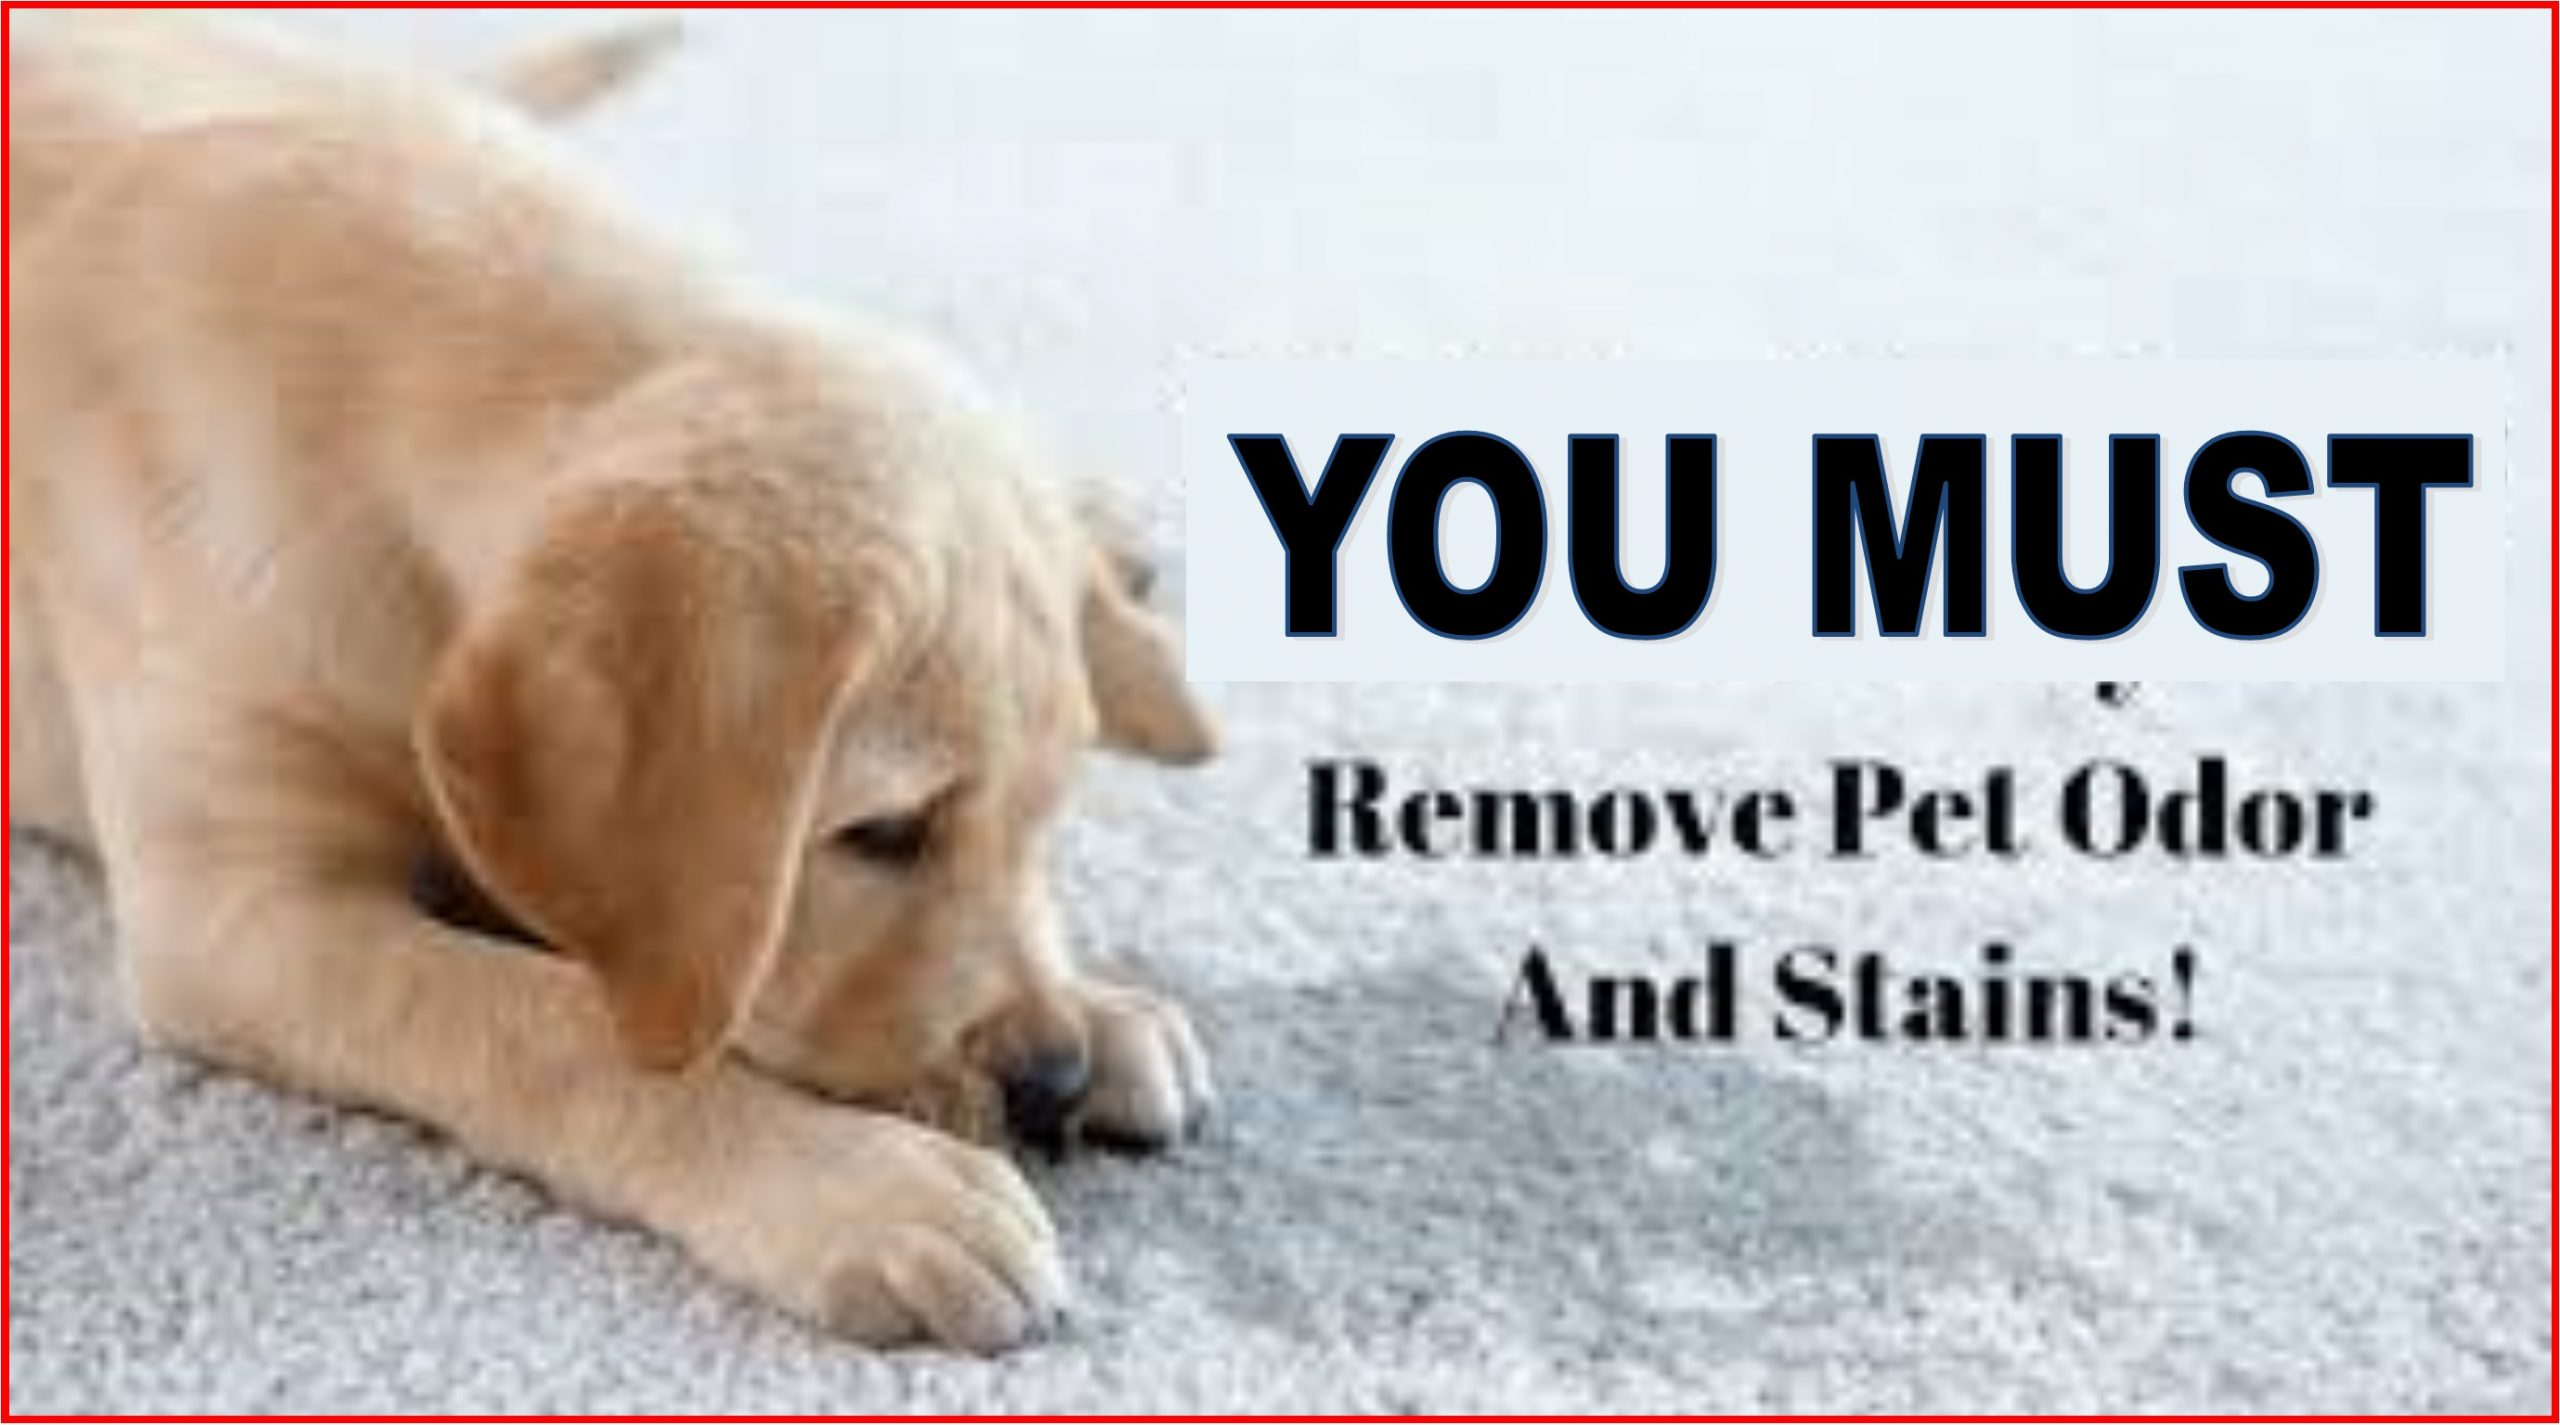 you must get rid of pet odors and stains